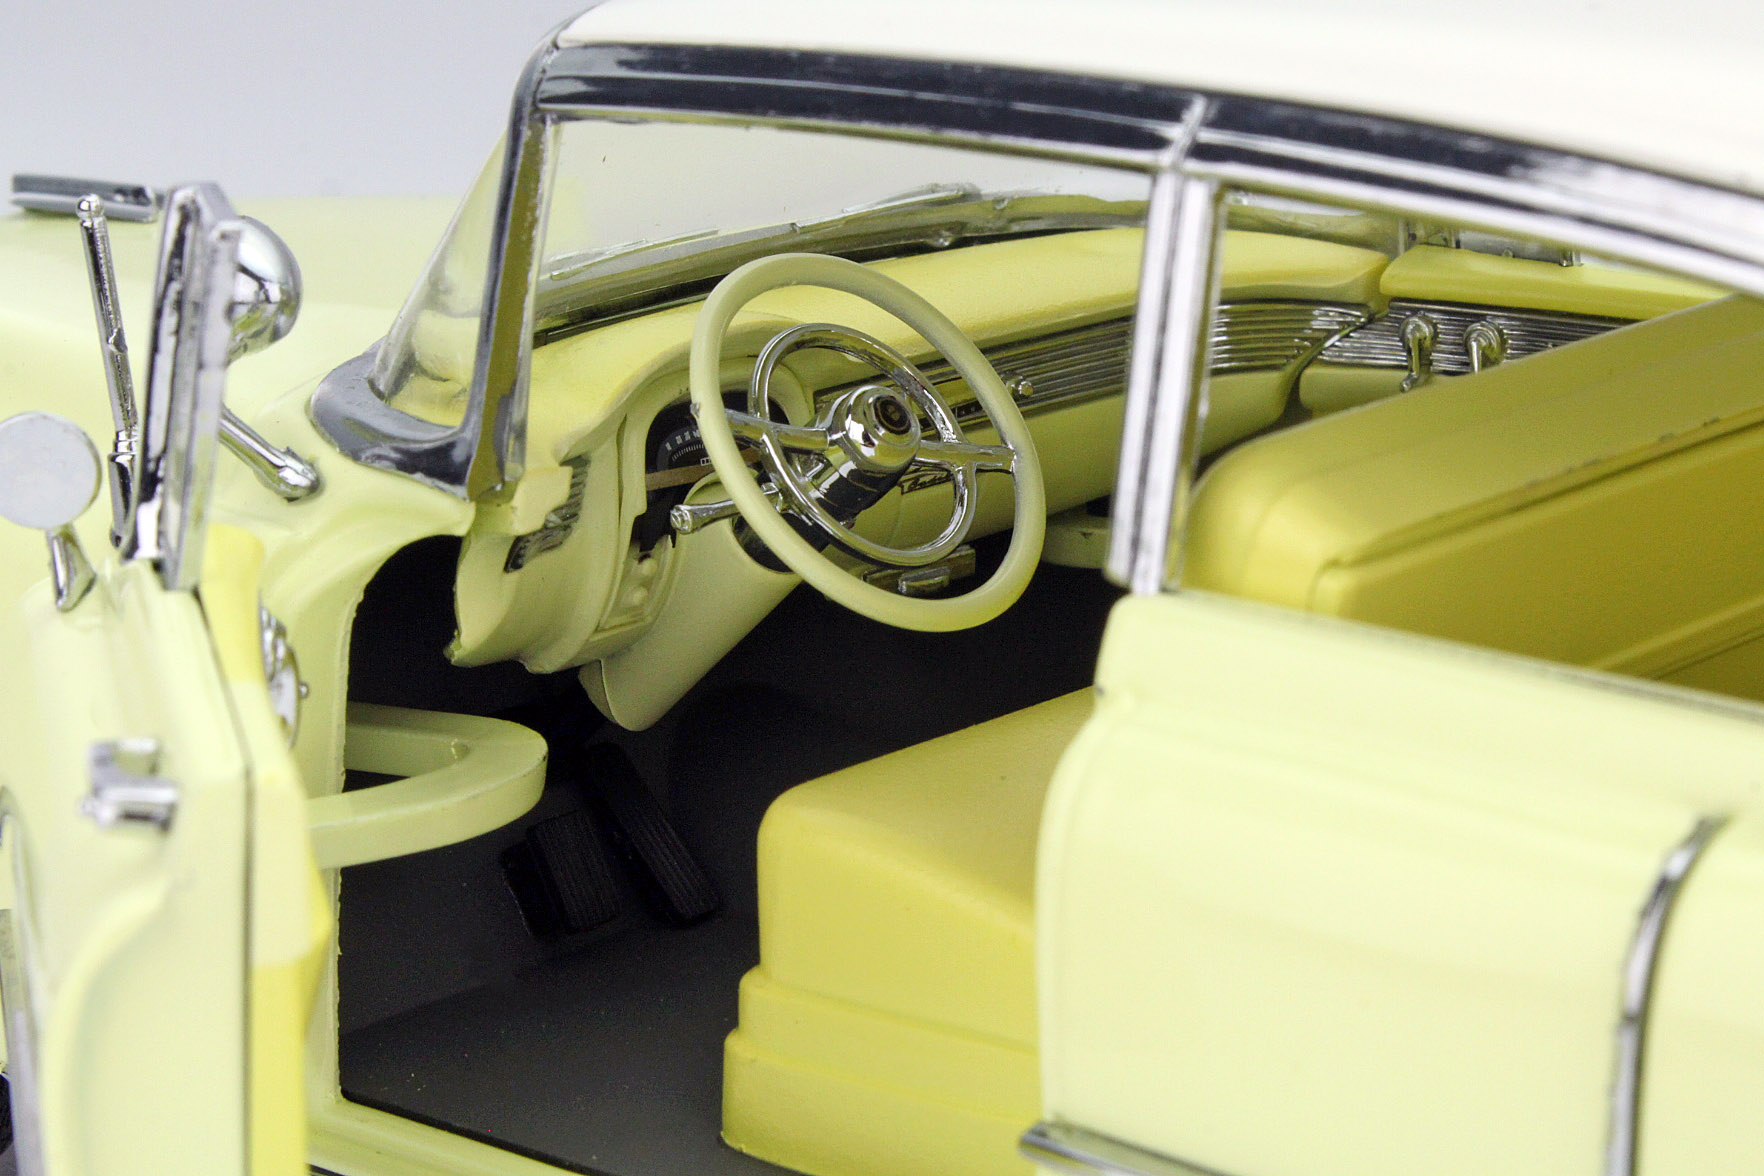 1955 Cadillac Fleetwood Series 60 Yellow White Roof Die Cast Engine Greenlight 12937